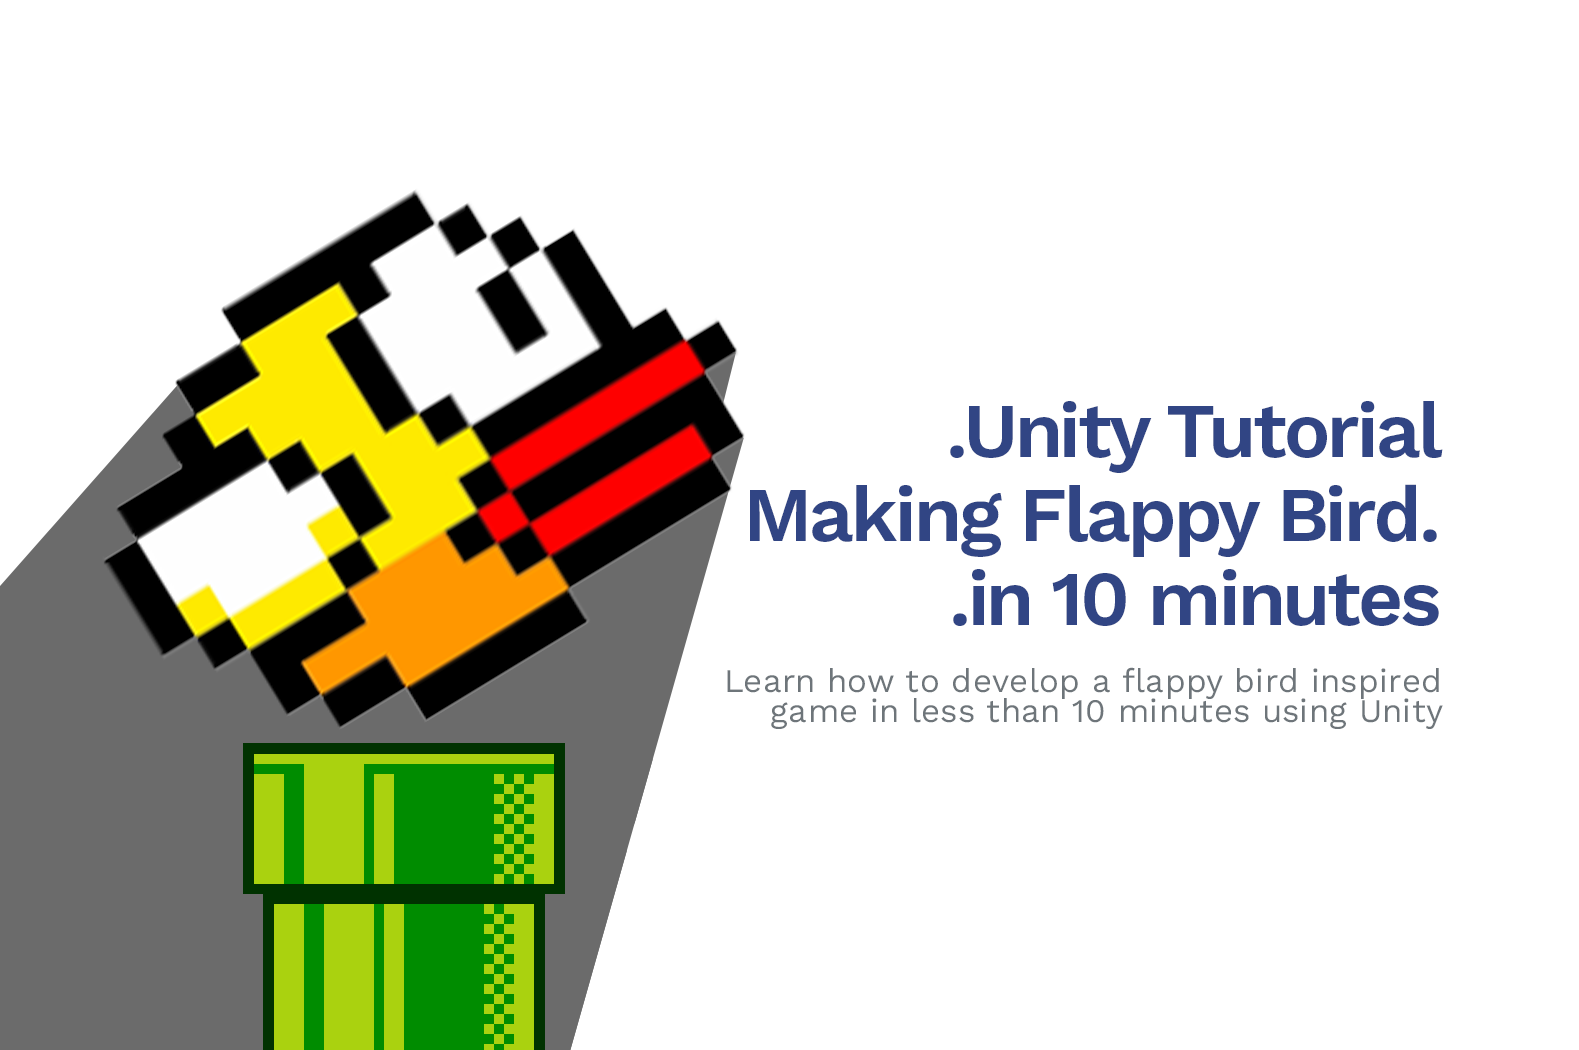 How To Make Your Own Flappy Bird Game in 10 Minutes (Unity Tutorial)